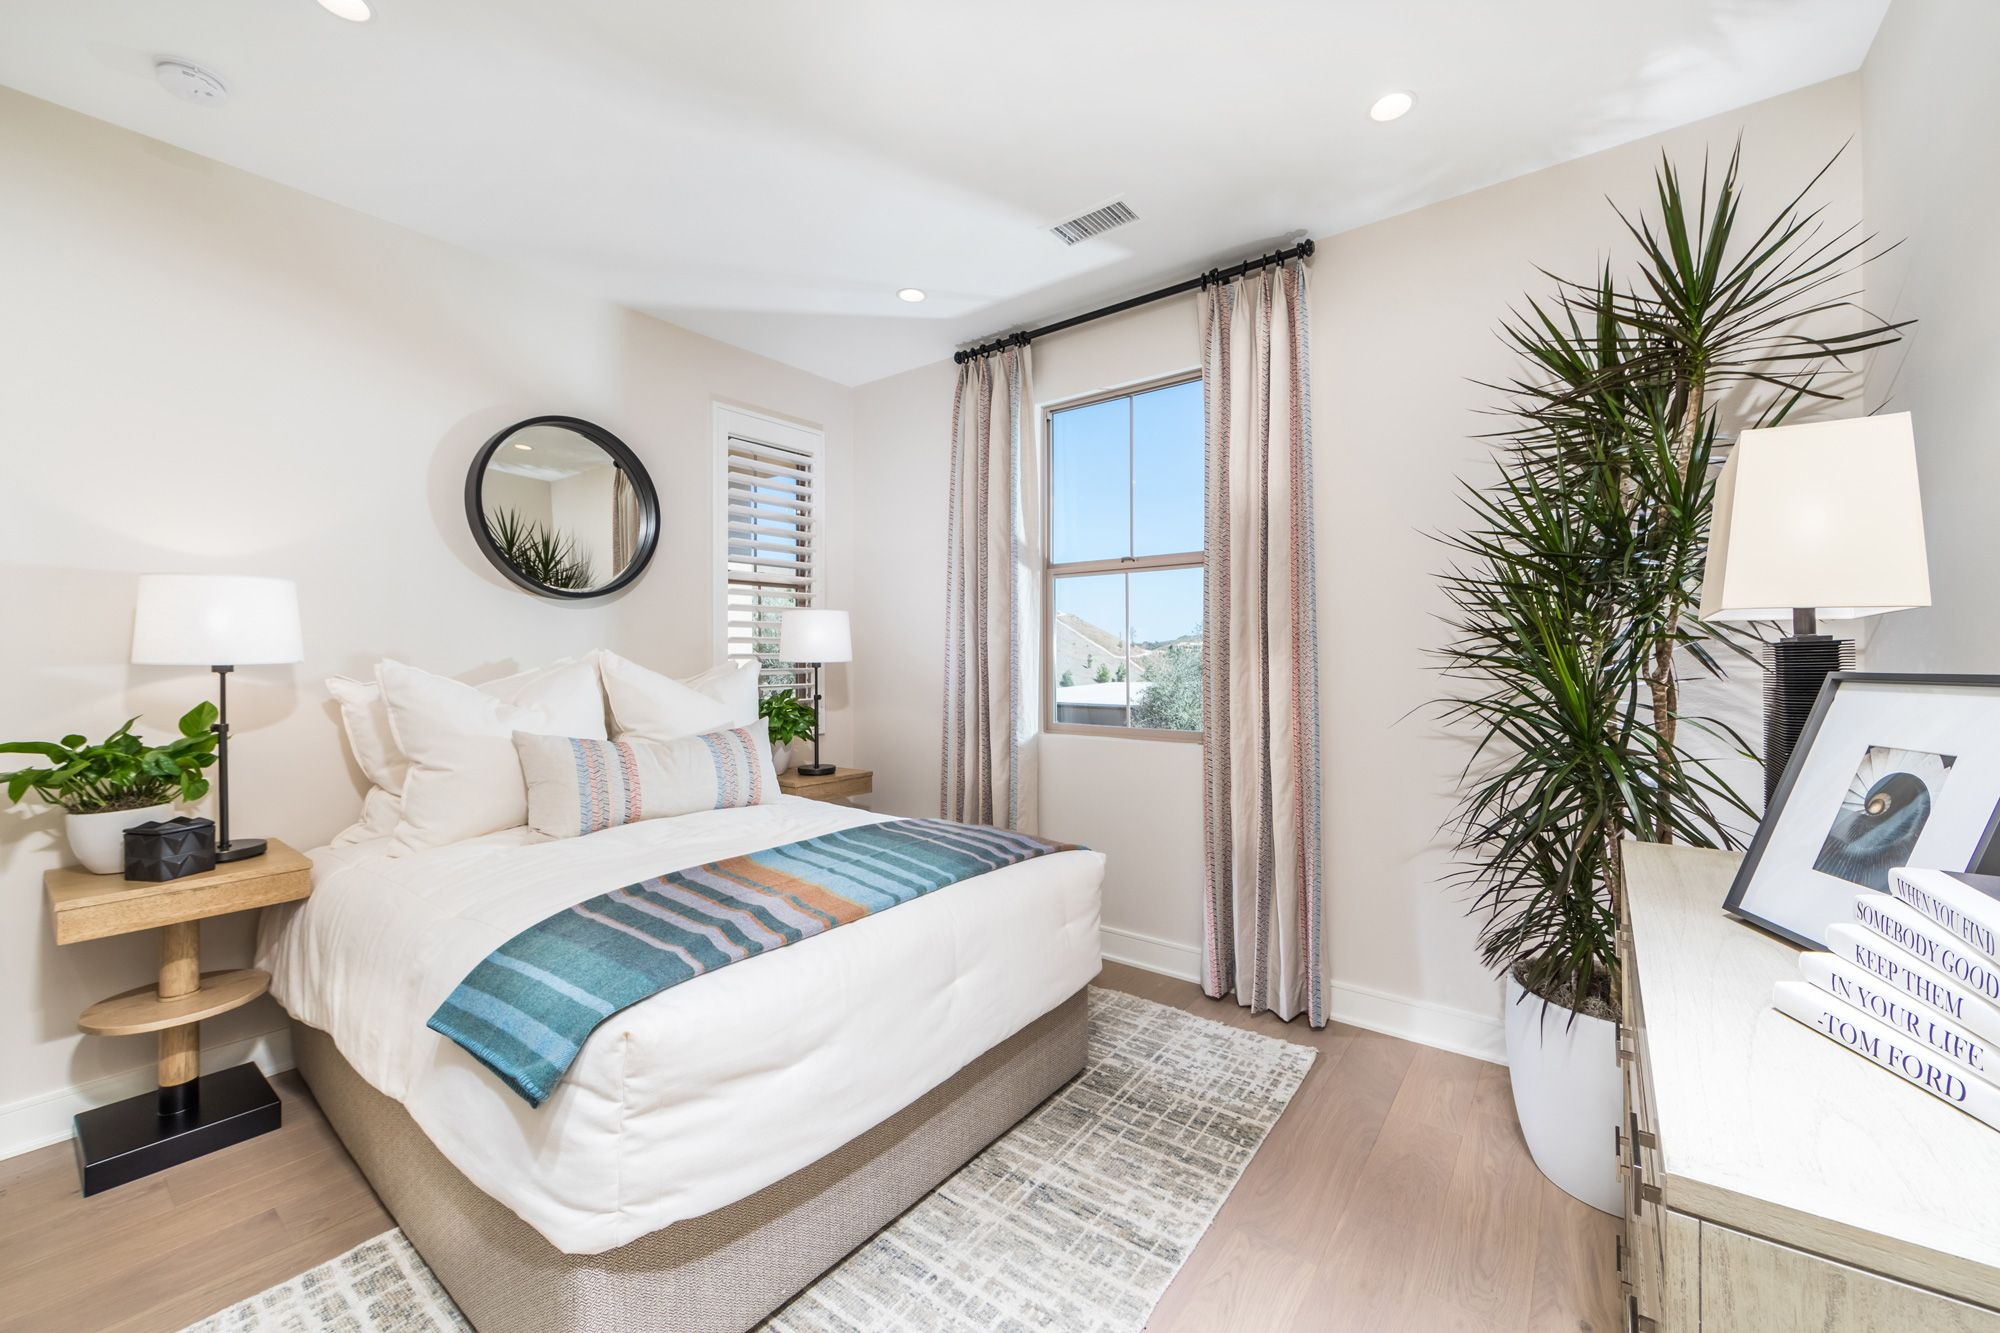 Bedroom featured in the Residence 1 By Irvine Pacific in Orange County, CA